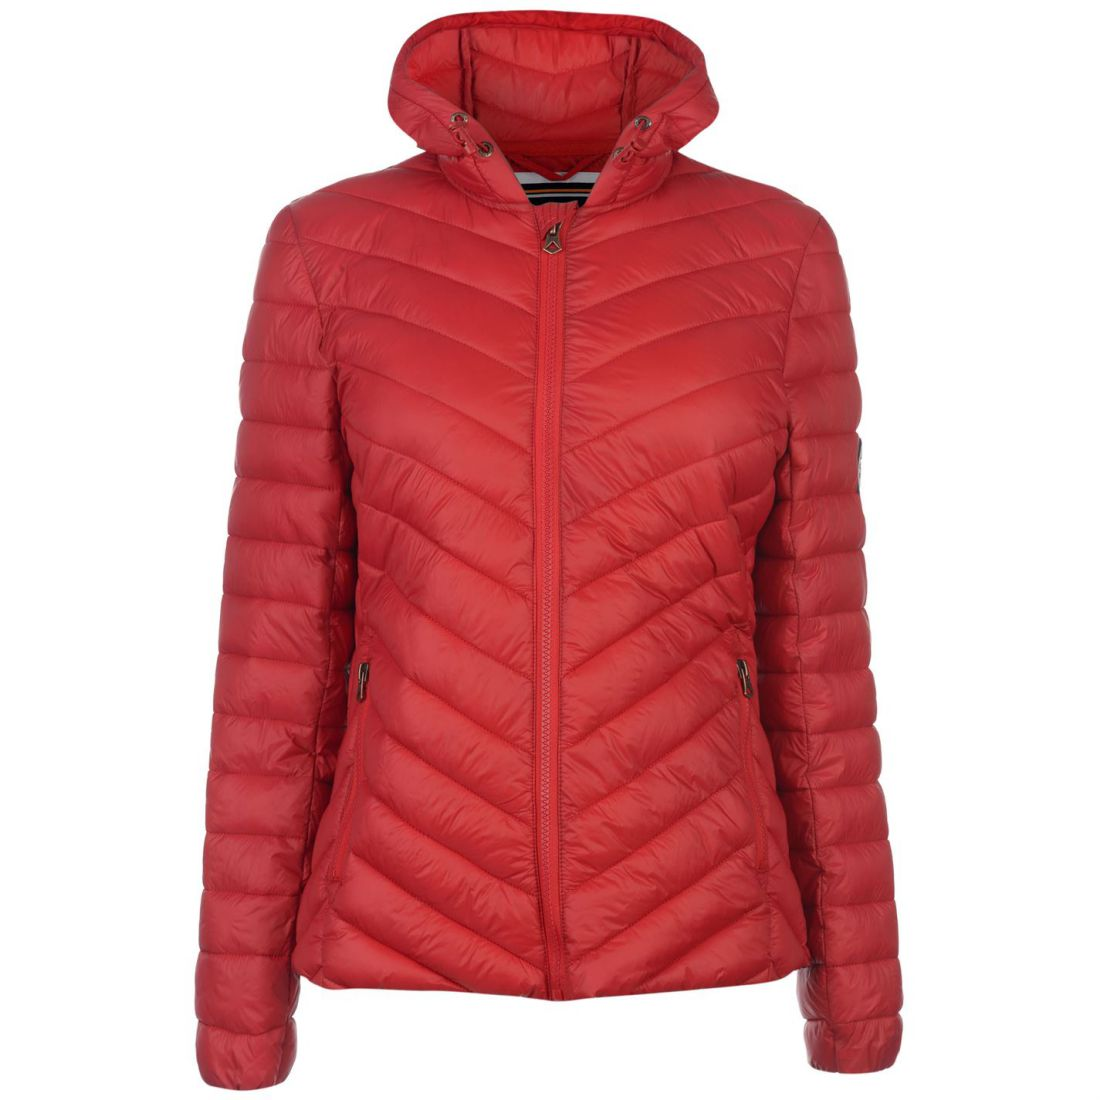 Womens SoulCal Micro Bubble Jacket Padded Long Sleeve New ...